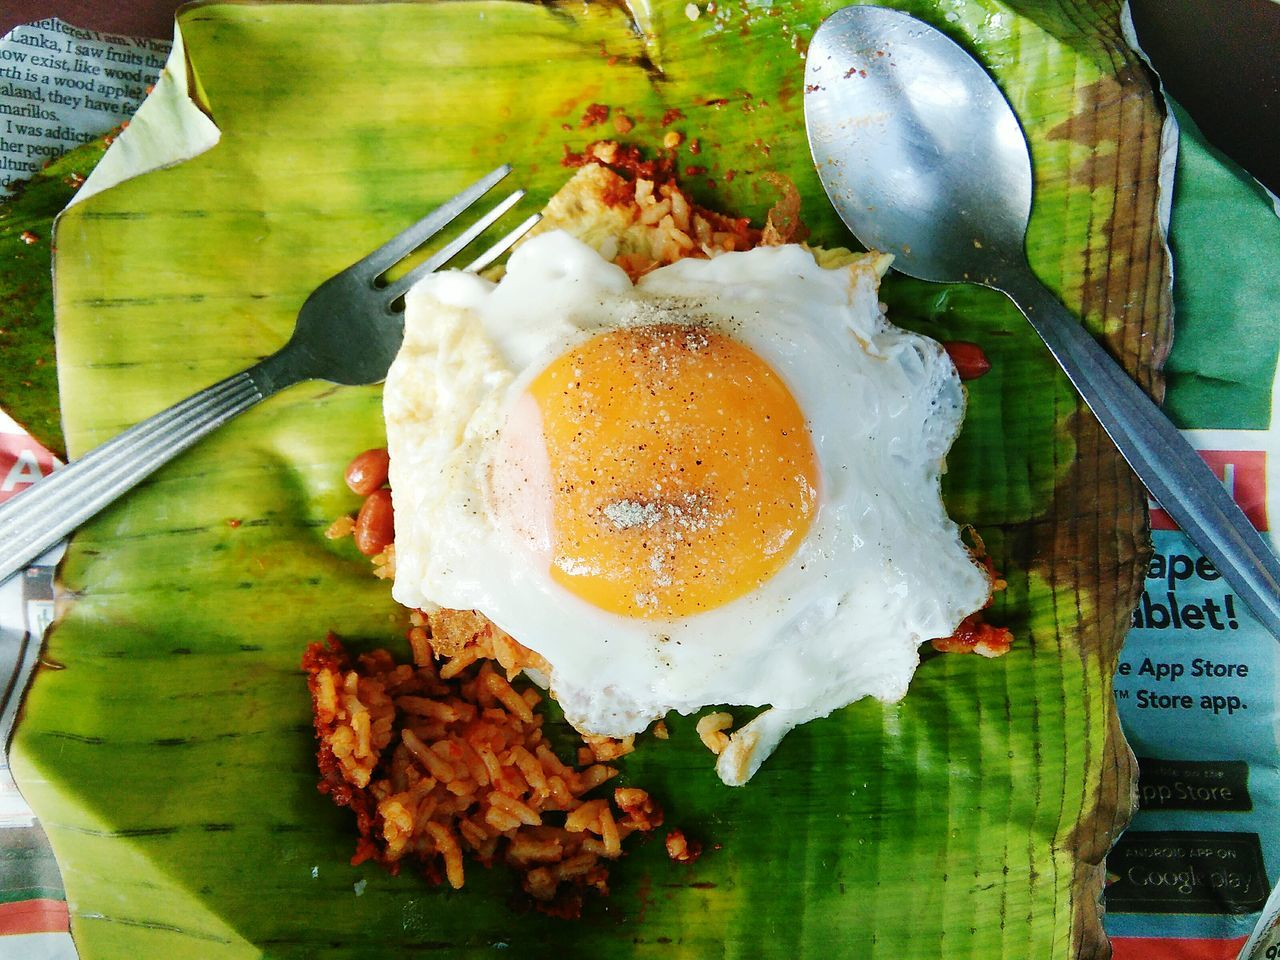 Satisfied Malaysian Craving Egg Egg Yolk Food Healthy Eating Food And Drink Fried Egg Sunny Side Up Egg White No People Freshness Close-up Ready-to-eat Day Outdoors FoodProject Food Photography Foodphotography Food And Drink Food Porn Awards Foodilicious Nasi Lemak Sambalbelacan Telurmata Mamakrestaurant Breakfast ♥